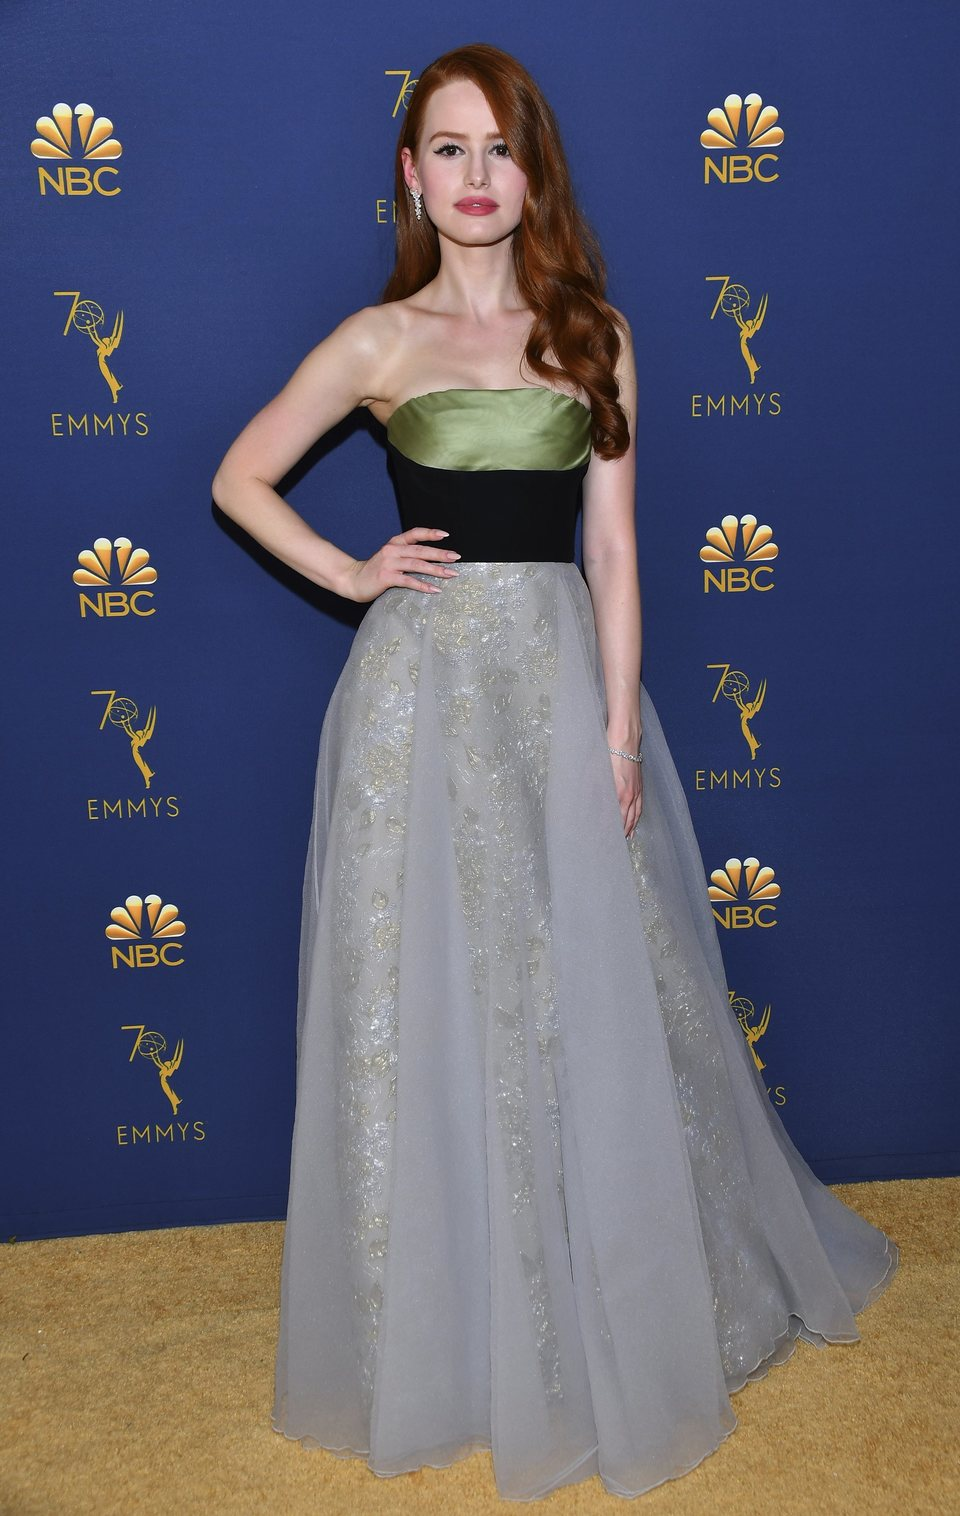 Madelaine Petsch on the red carpet at the Emmys 2018